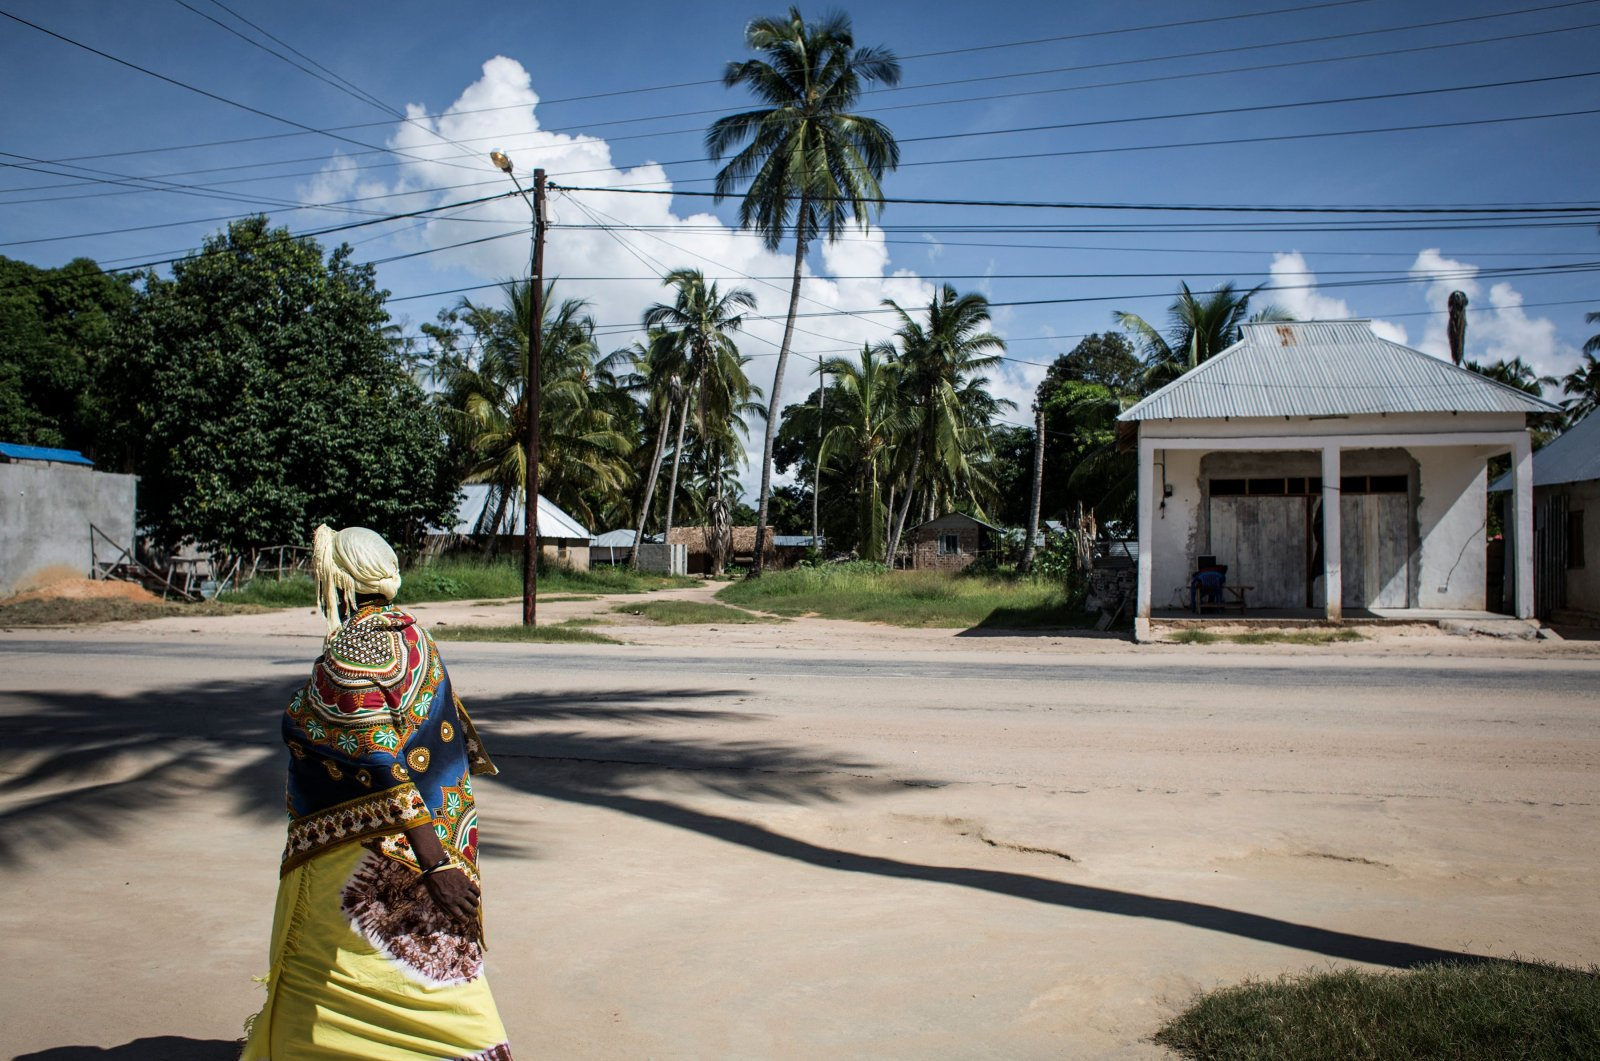 A Mozambican woman walks in Palma, a small, palm-fringed fishing town meant to become a symbol of Mozambique's glittering future, transformed by one of the world's largest liquefied natural gas projects Febr. 16, 2017. (AFP Photo)